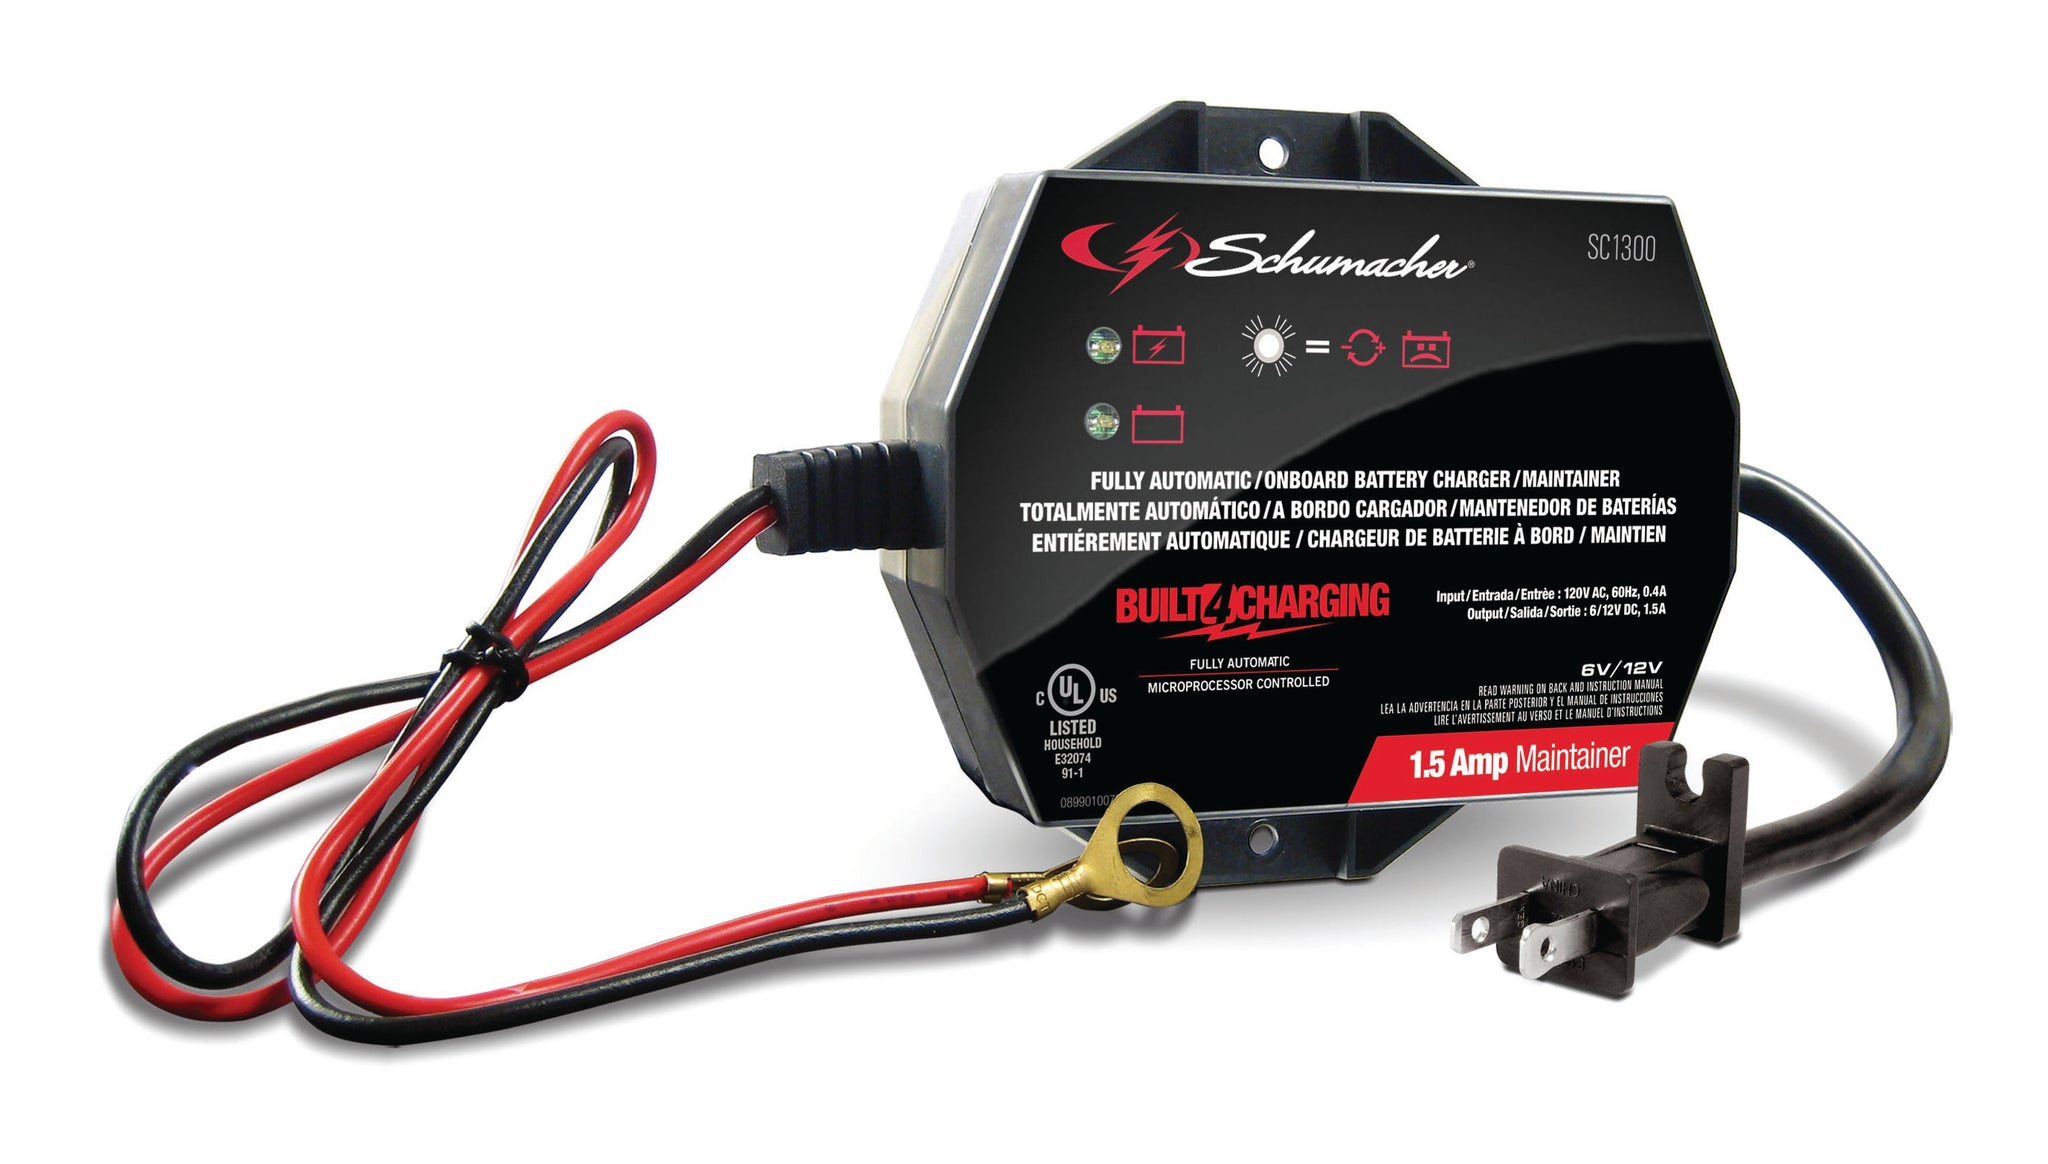 Schumacher 1.5A Onboard Battery Charger & Maintainer